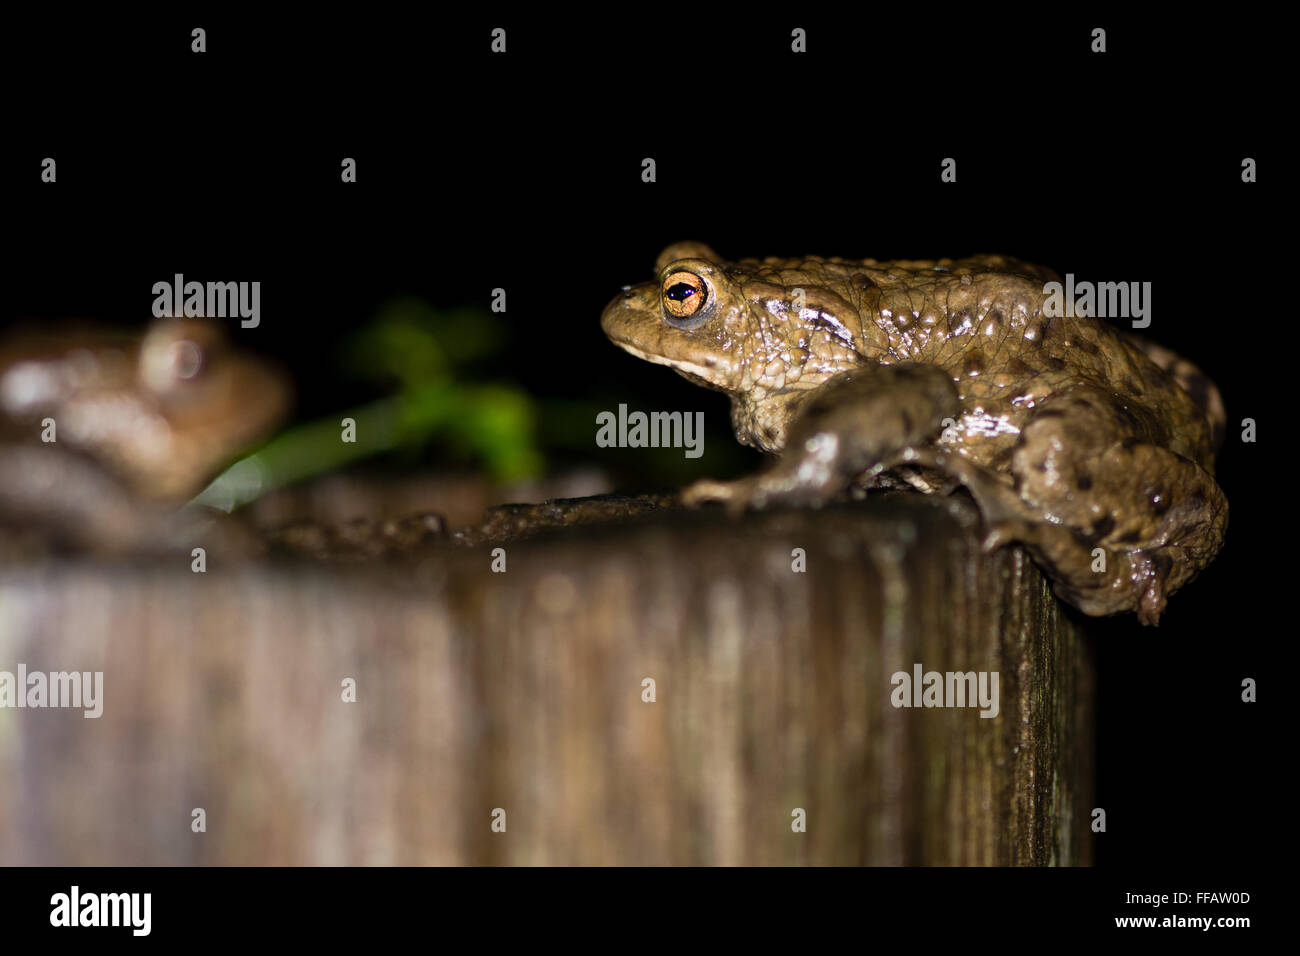 Two toads (Bufo bufo). A common toad climbs onto a wooden post, and faces another out of focus - Stock Image